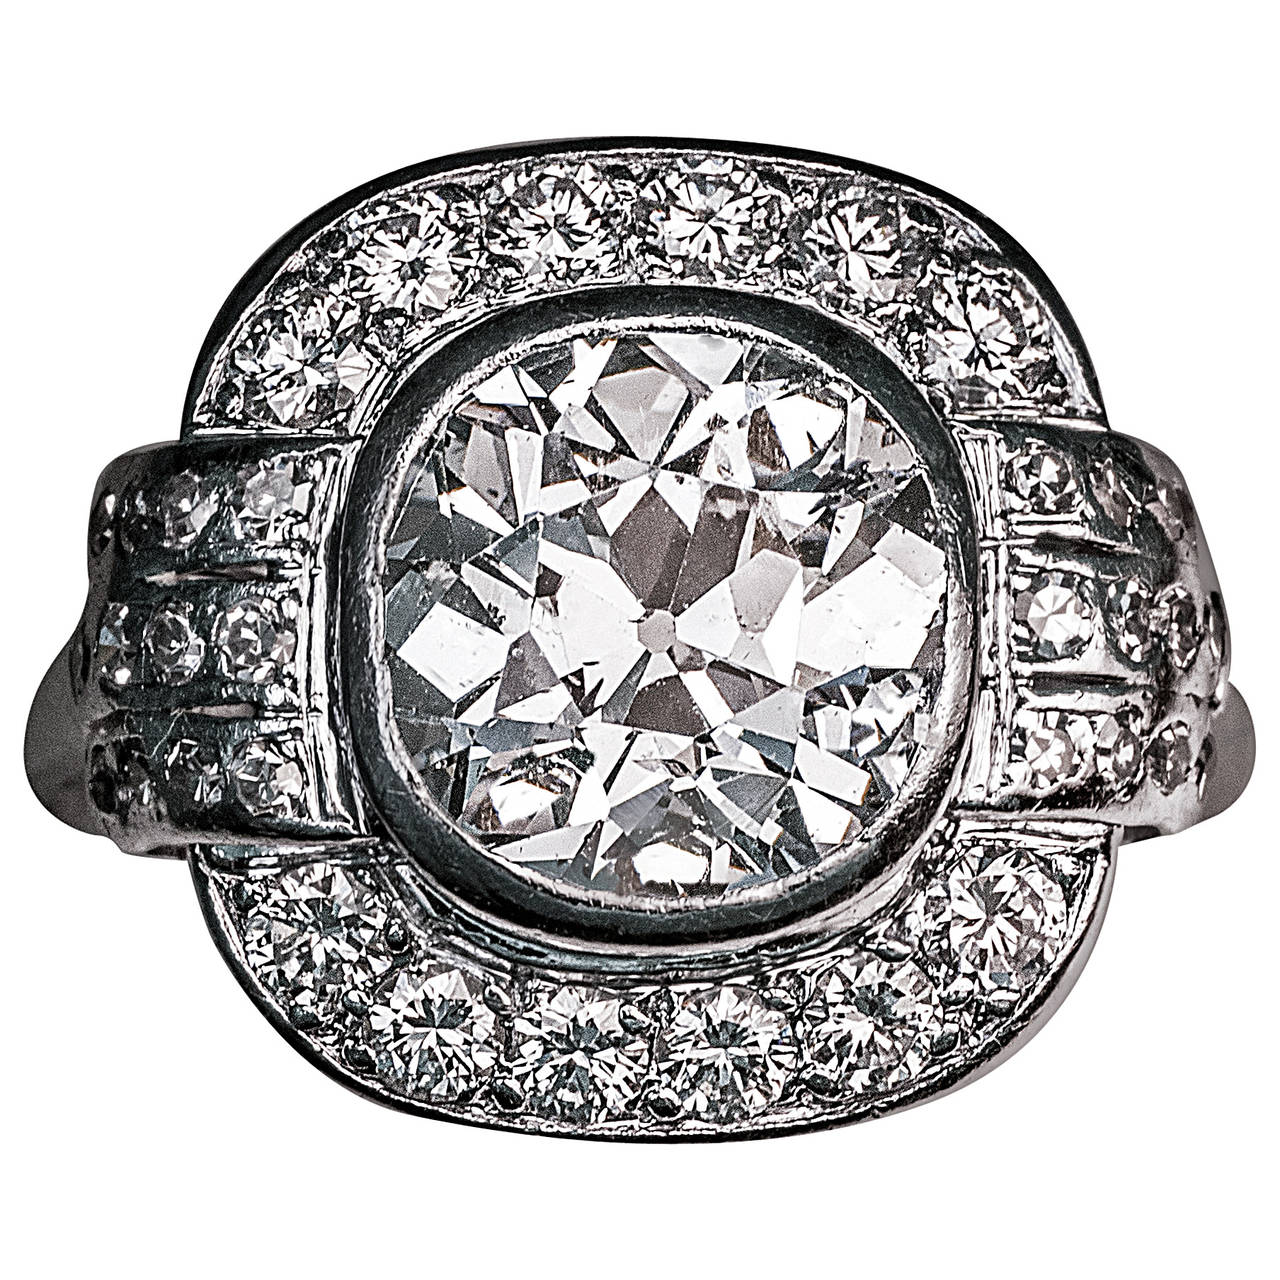 Art Deco 2.91 Carat Diamond Platinum Engagement Ring For Sale